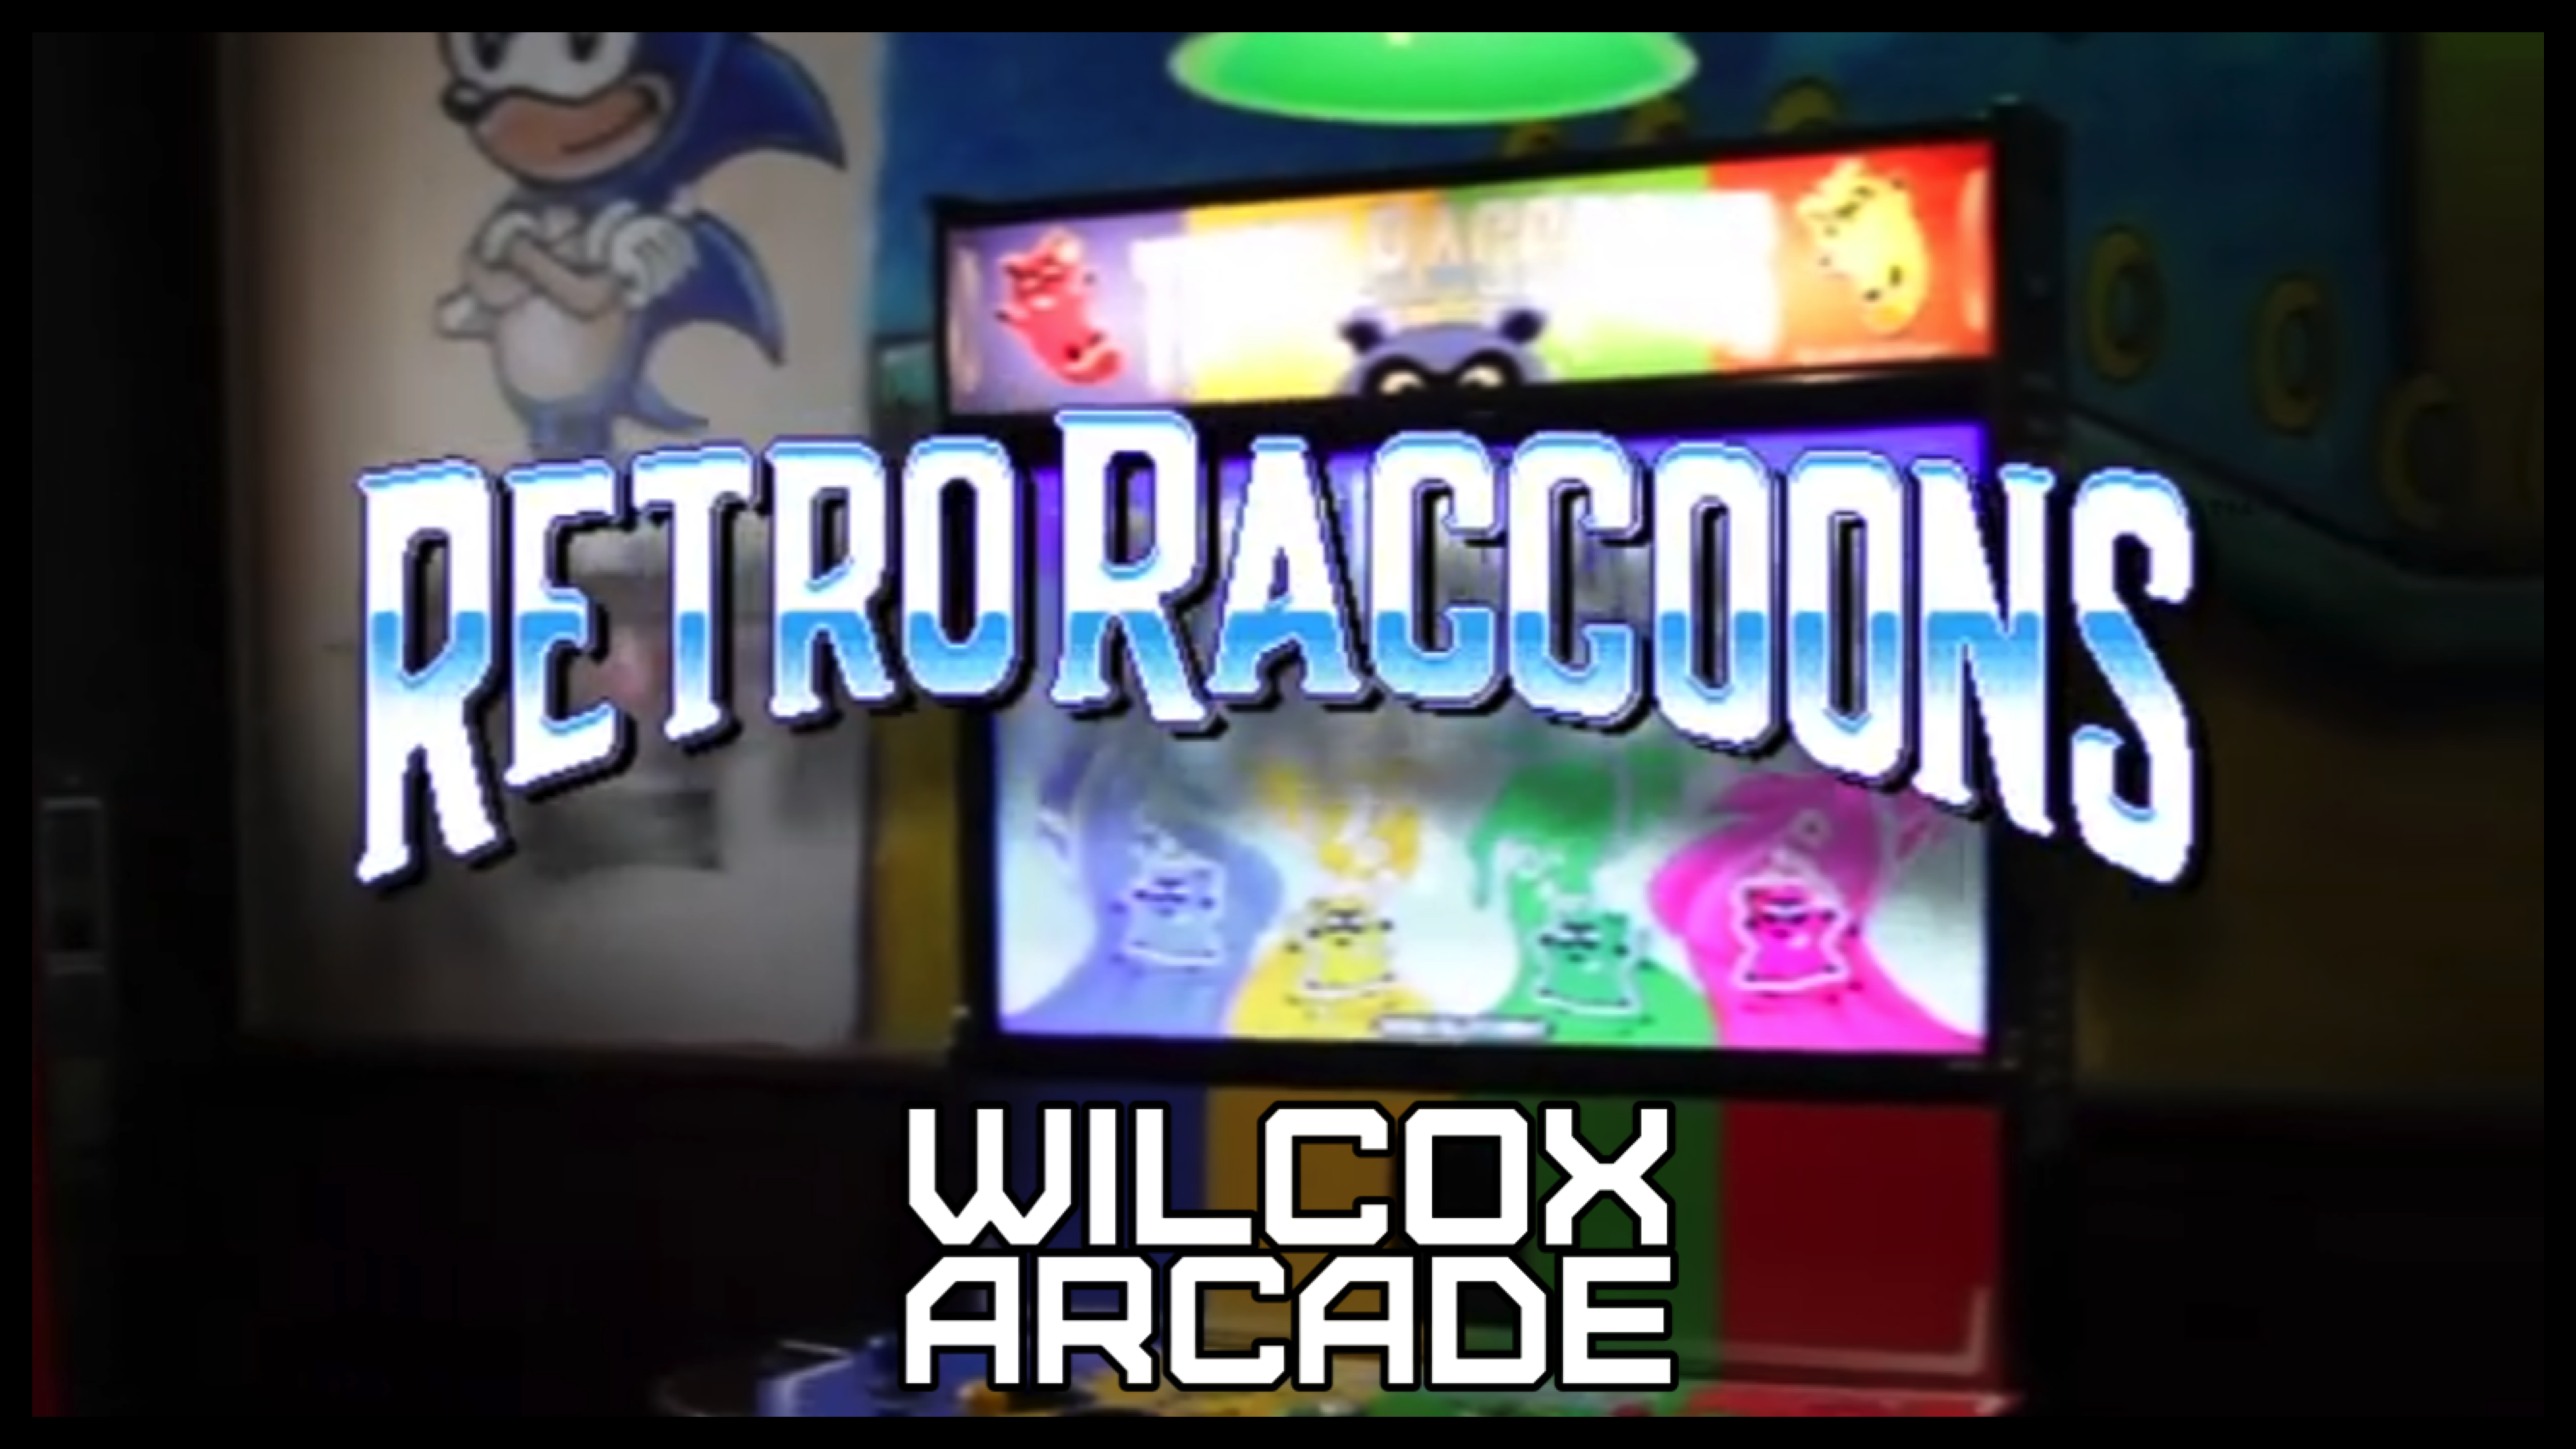 Tipsy Raccoons Now Titled Retro Raccoons and Published by Incredible